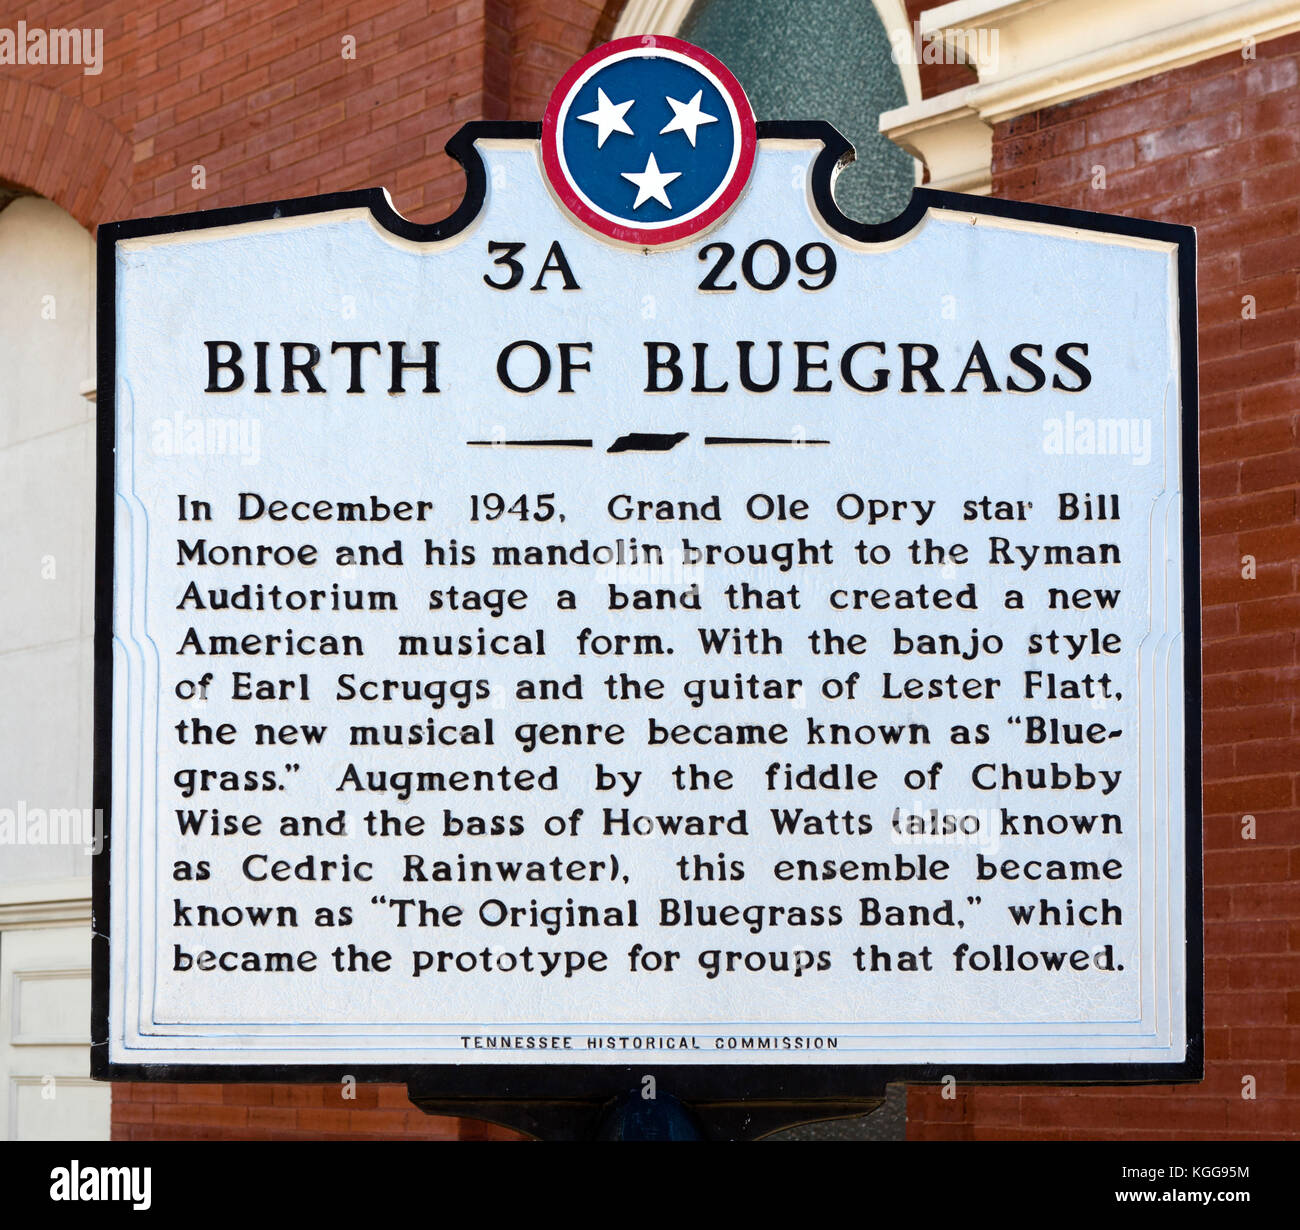 Birth of Bluegrass sign outside the Ryman Auditorium, formerly the Grand Ole Opry House from 1943-1974, Nashville,Tennessee, - Stock Image